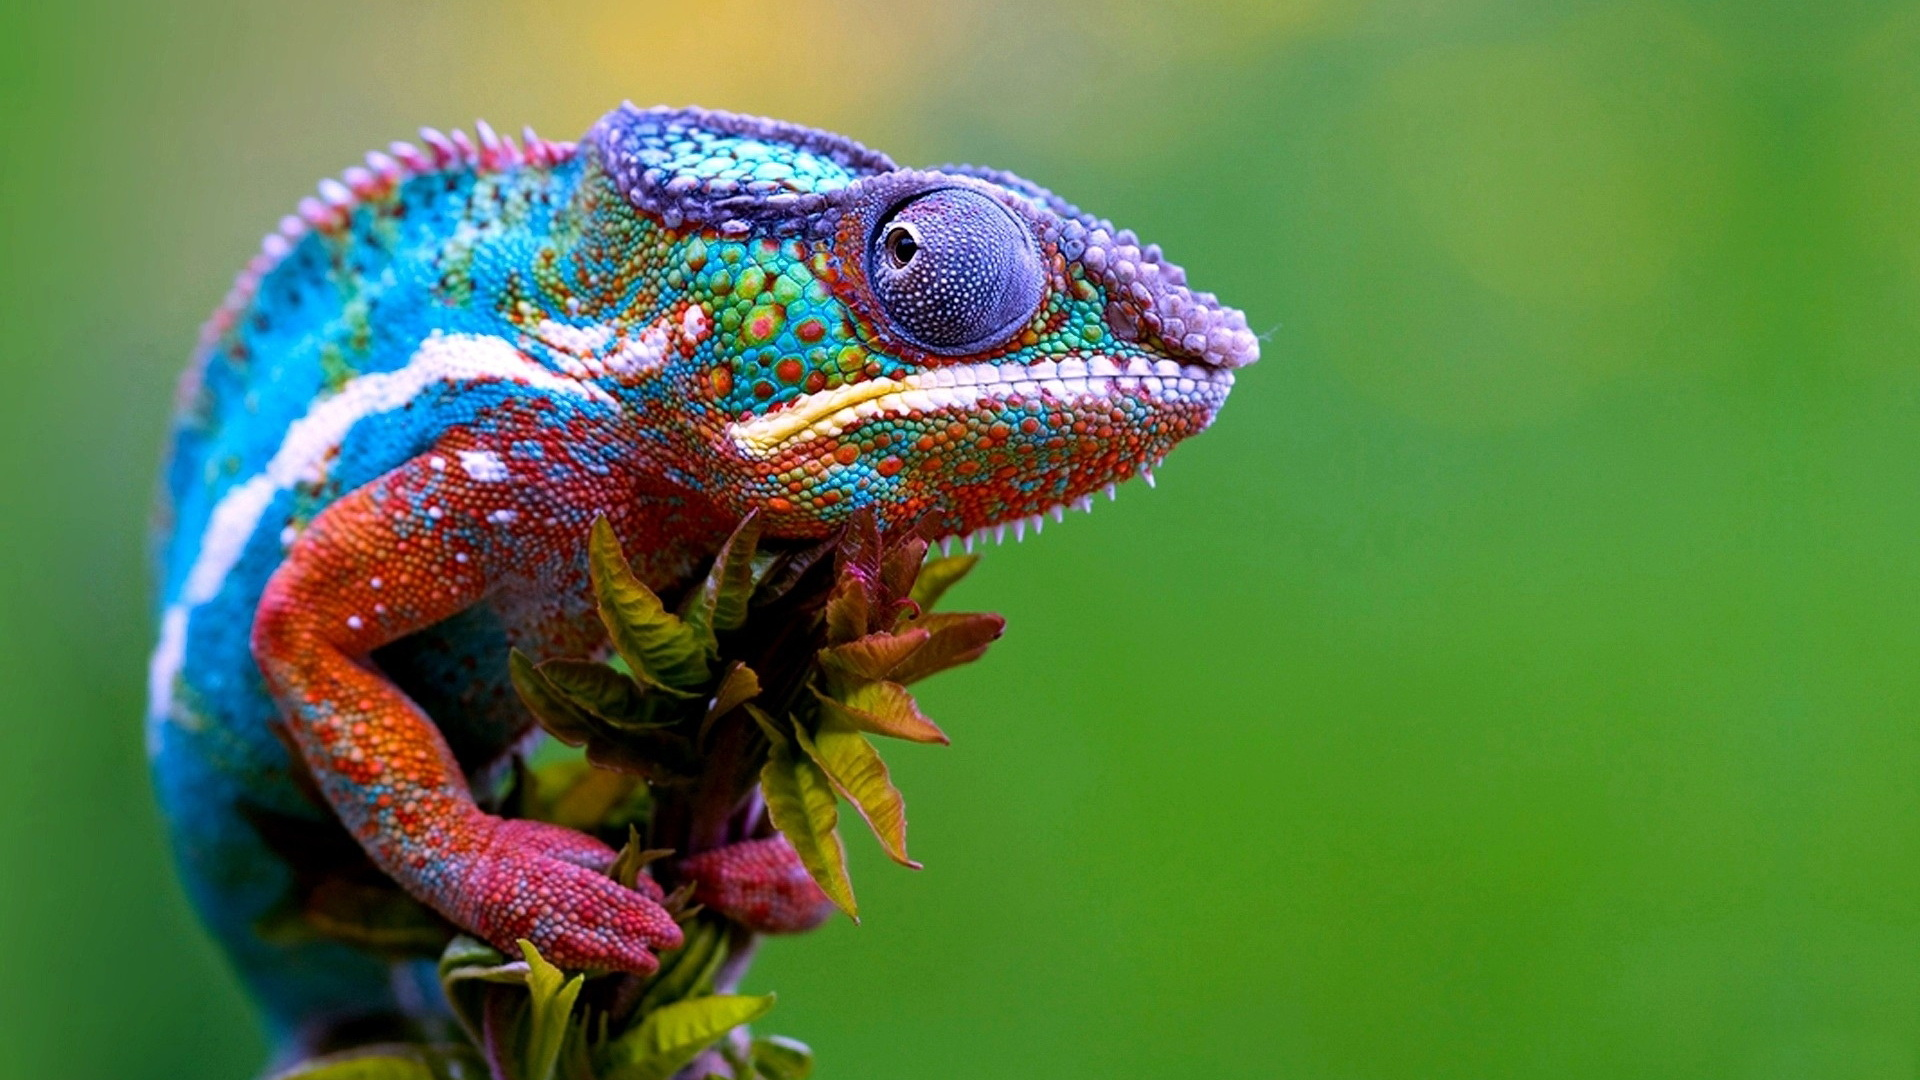 chameleon-colorful-lizard